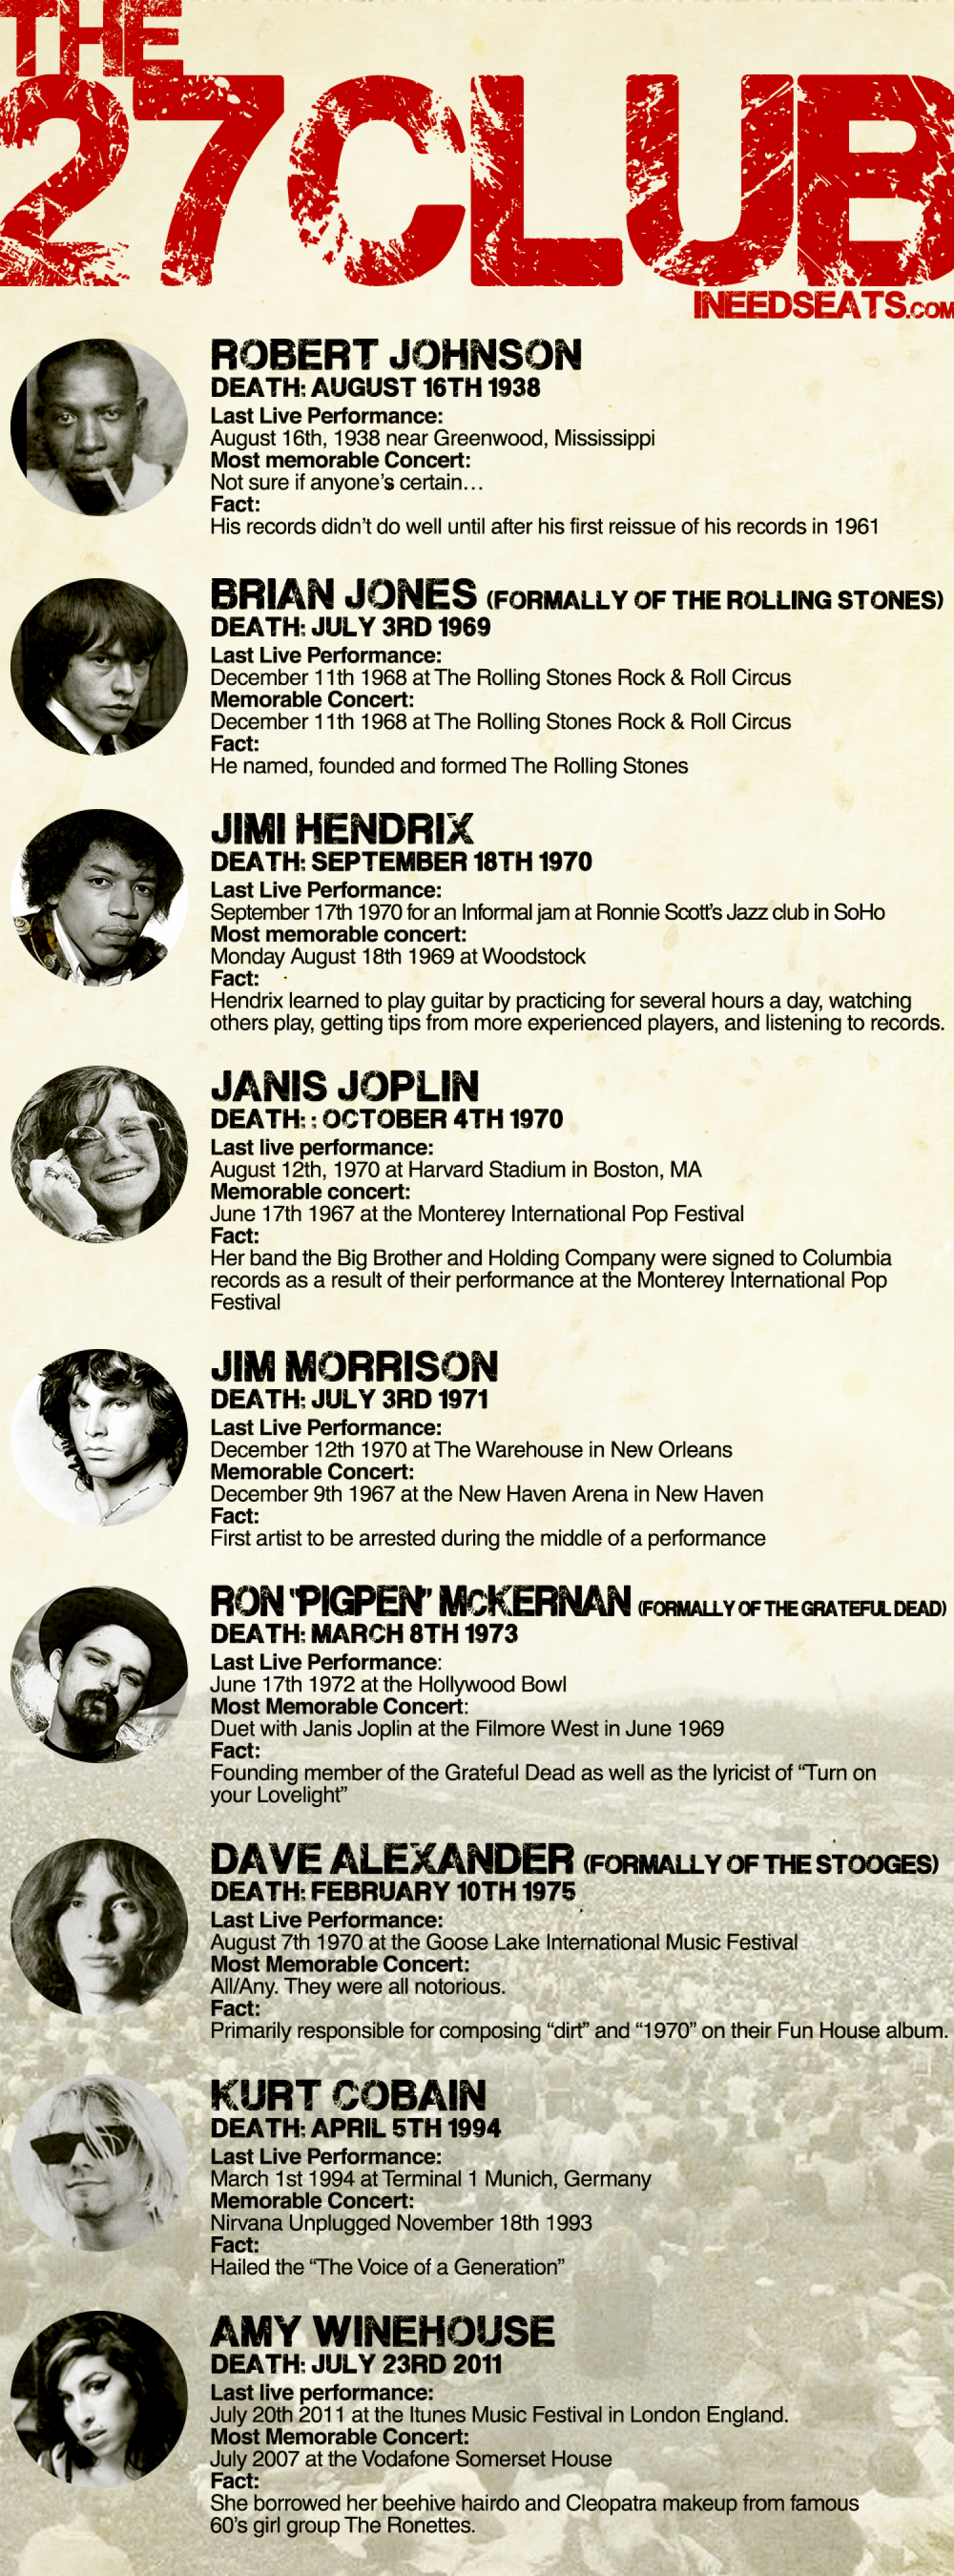 The 27 Club  Infographic